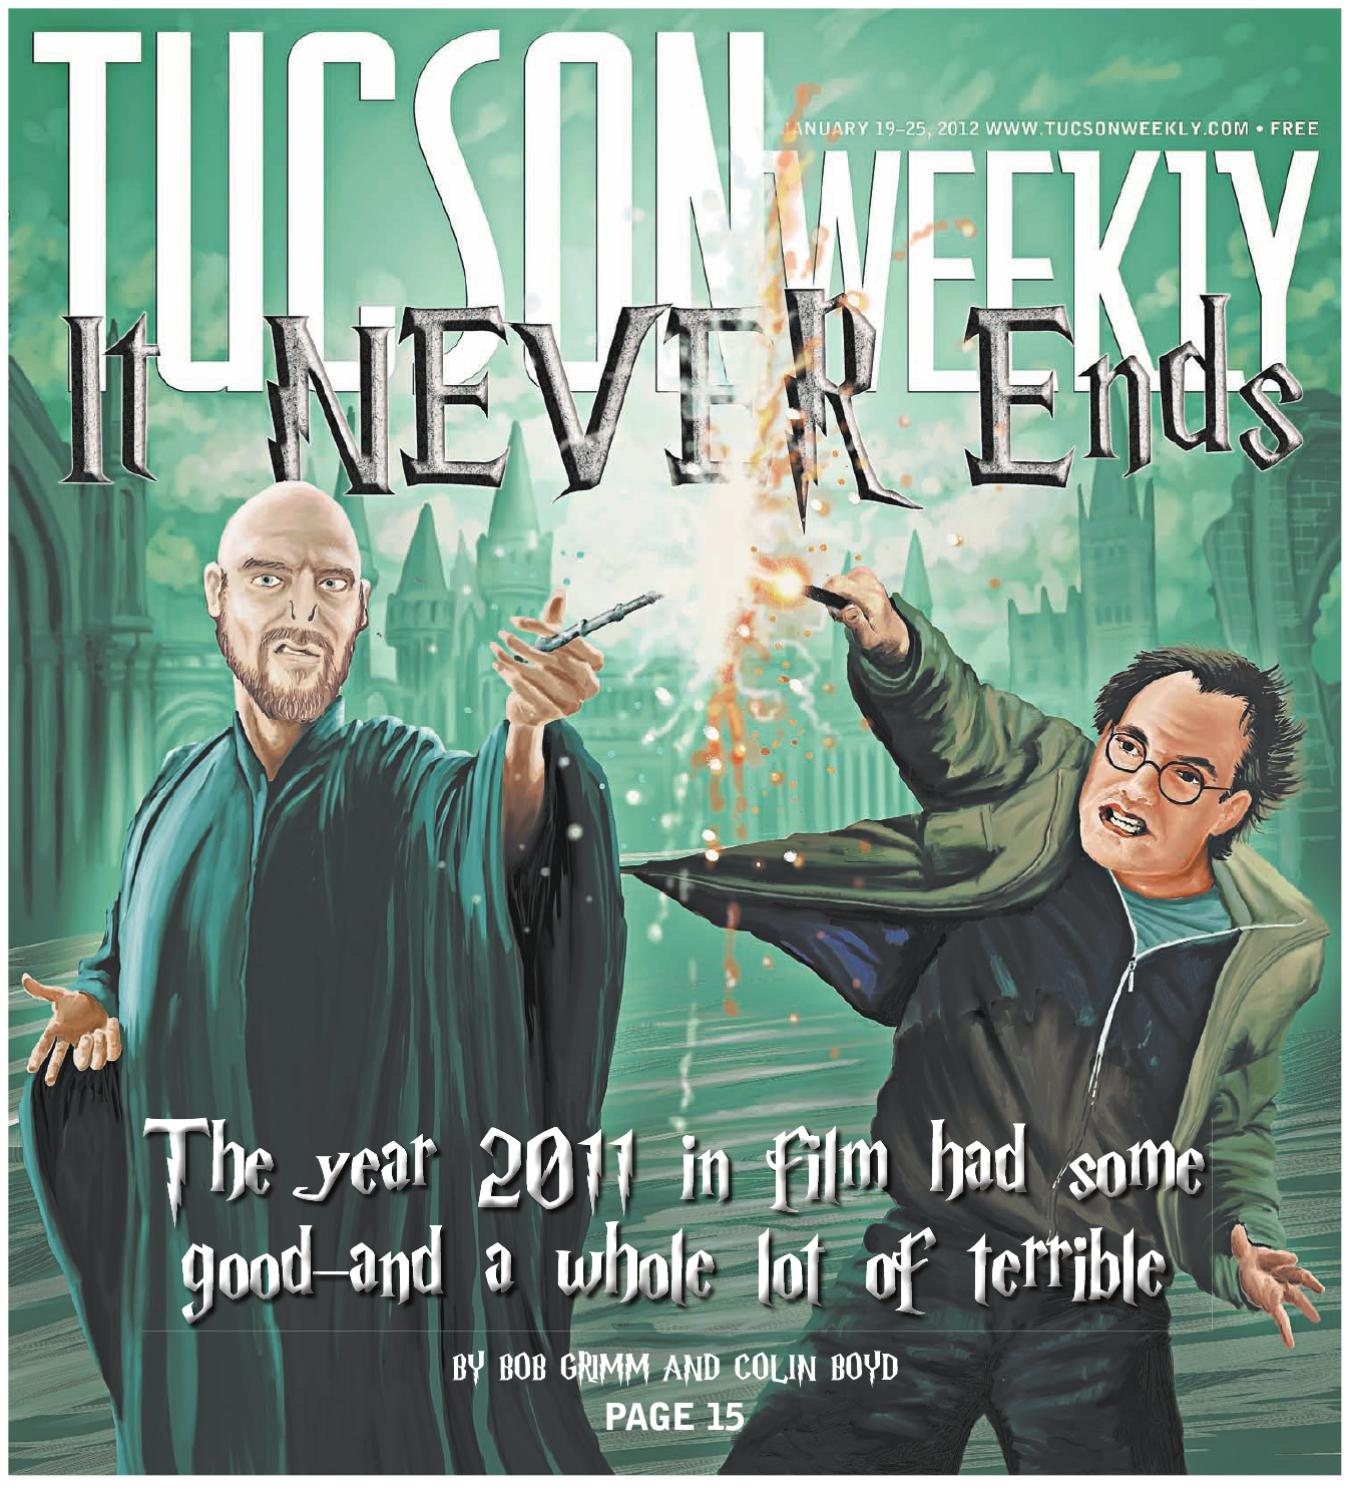 Tucson Weekly January 19, 2012